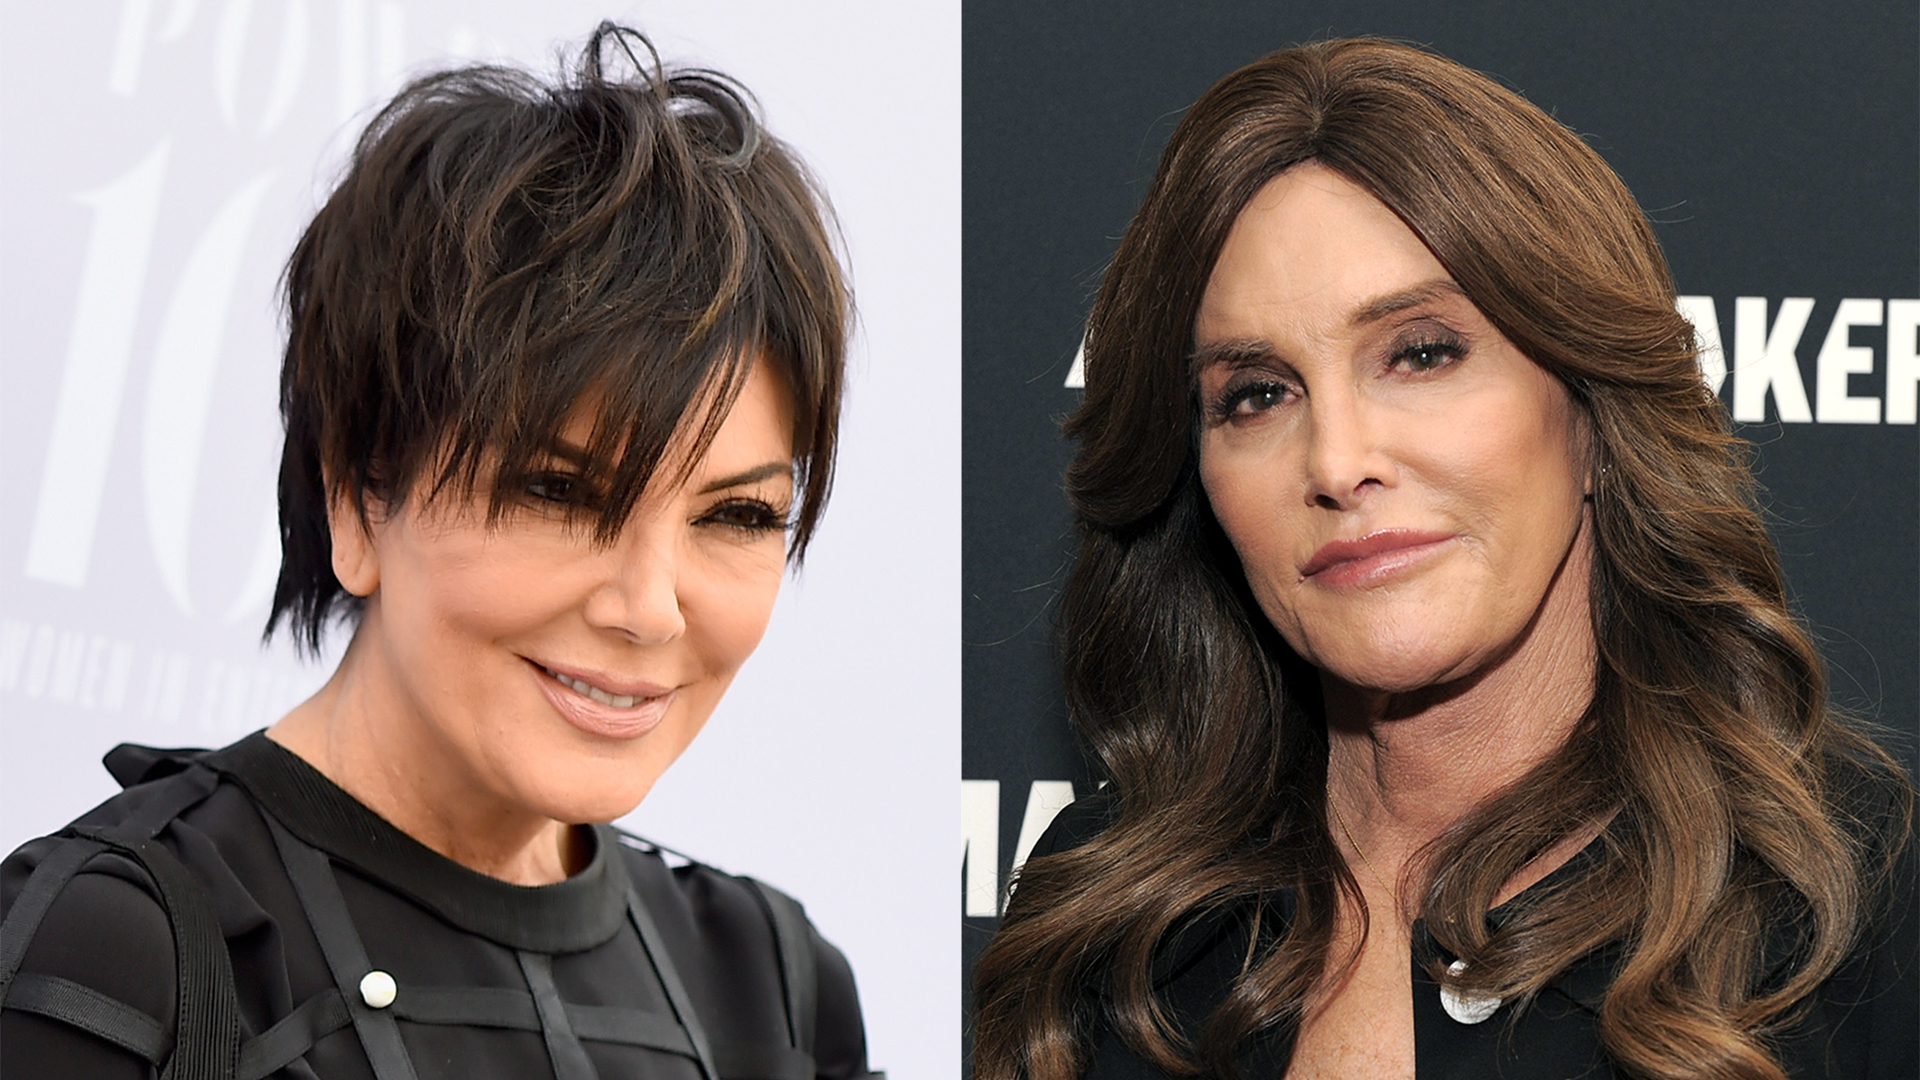 Kris Jenner Opens Up On Caitlyns Transition Reveals Her